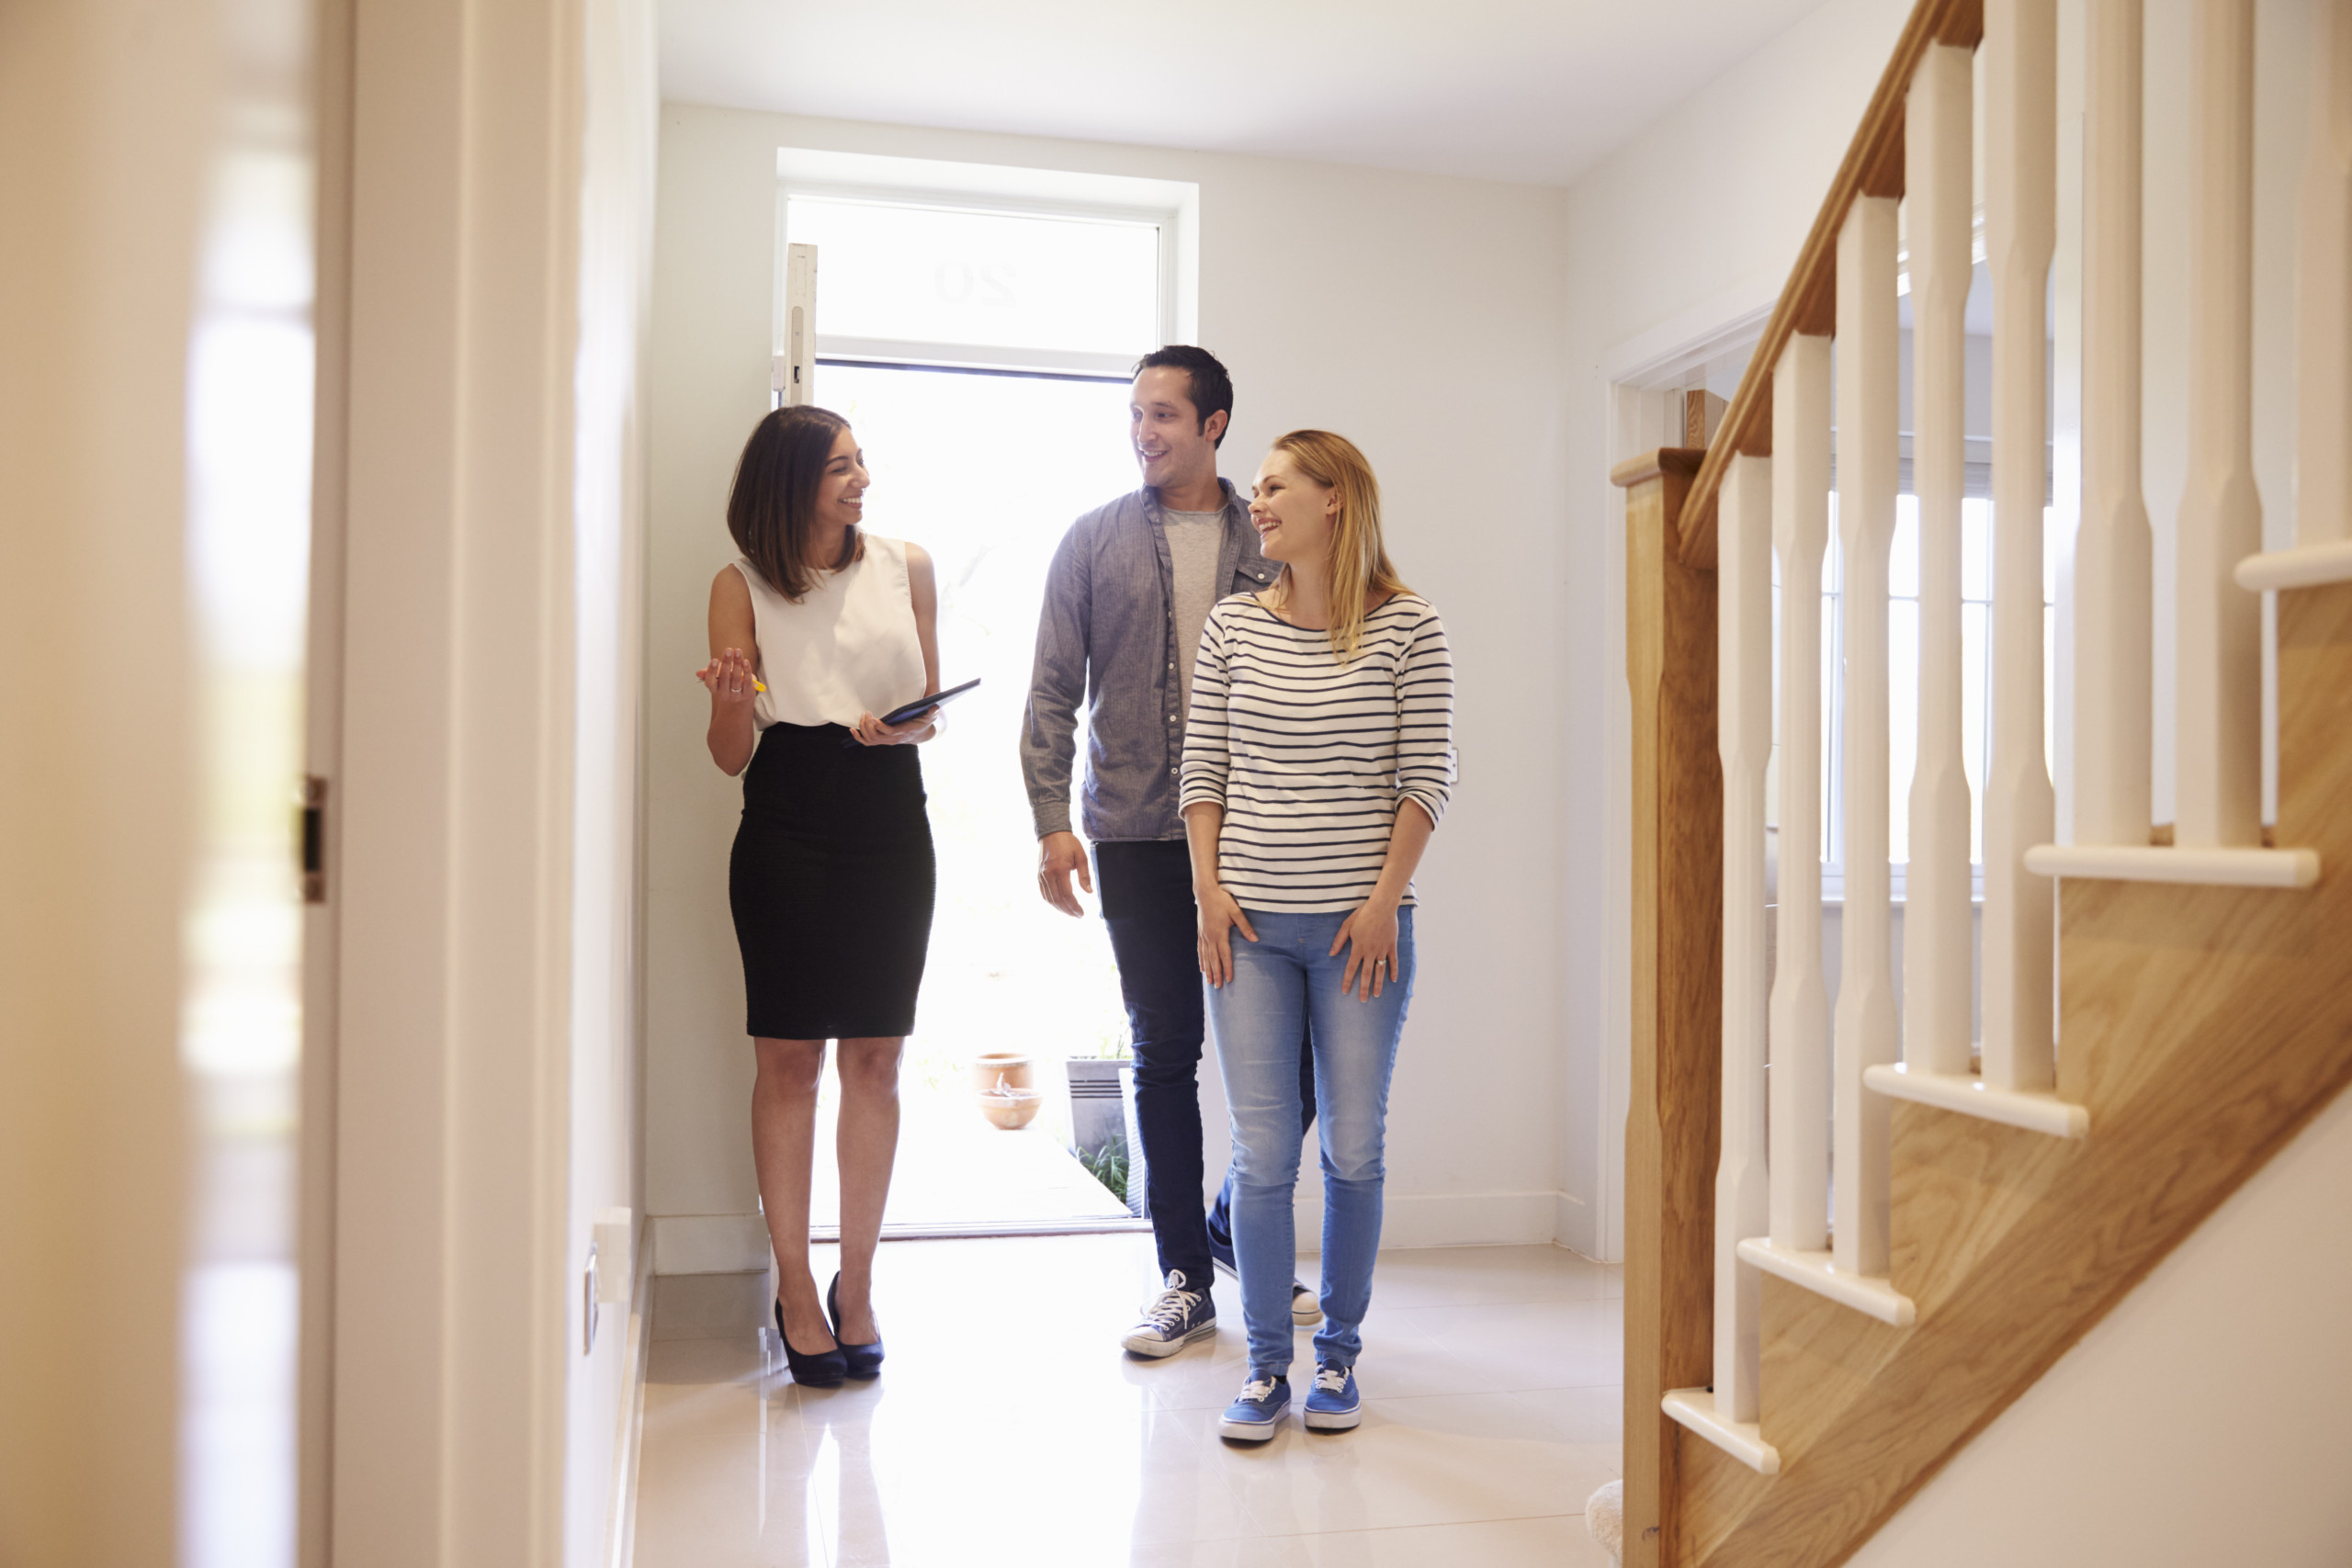 Selling Homes in the Millennial Market